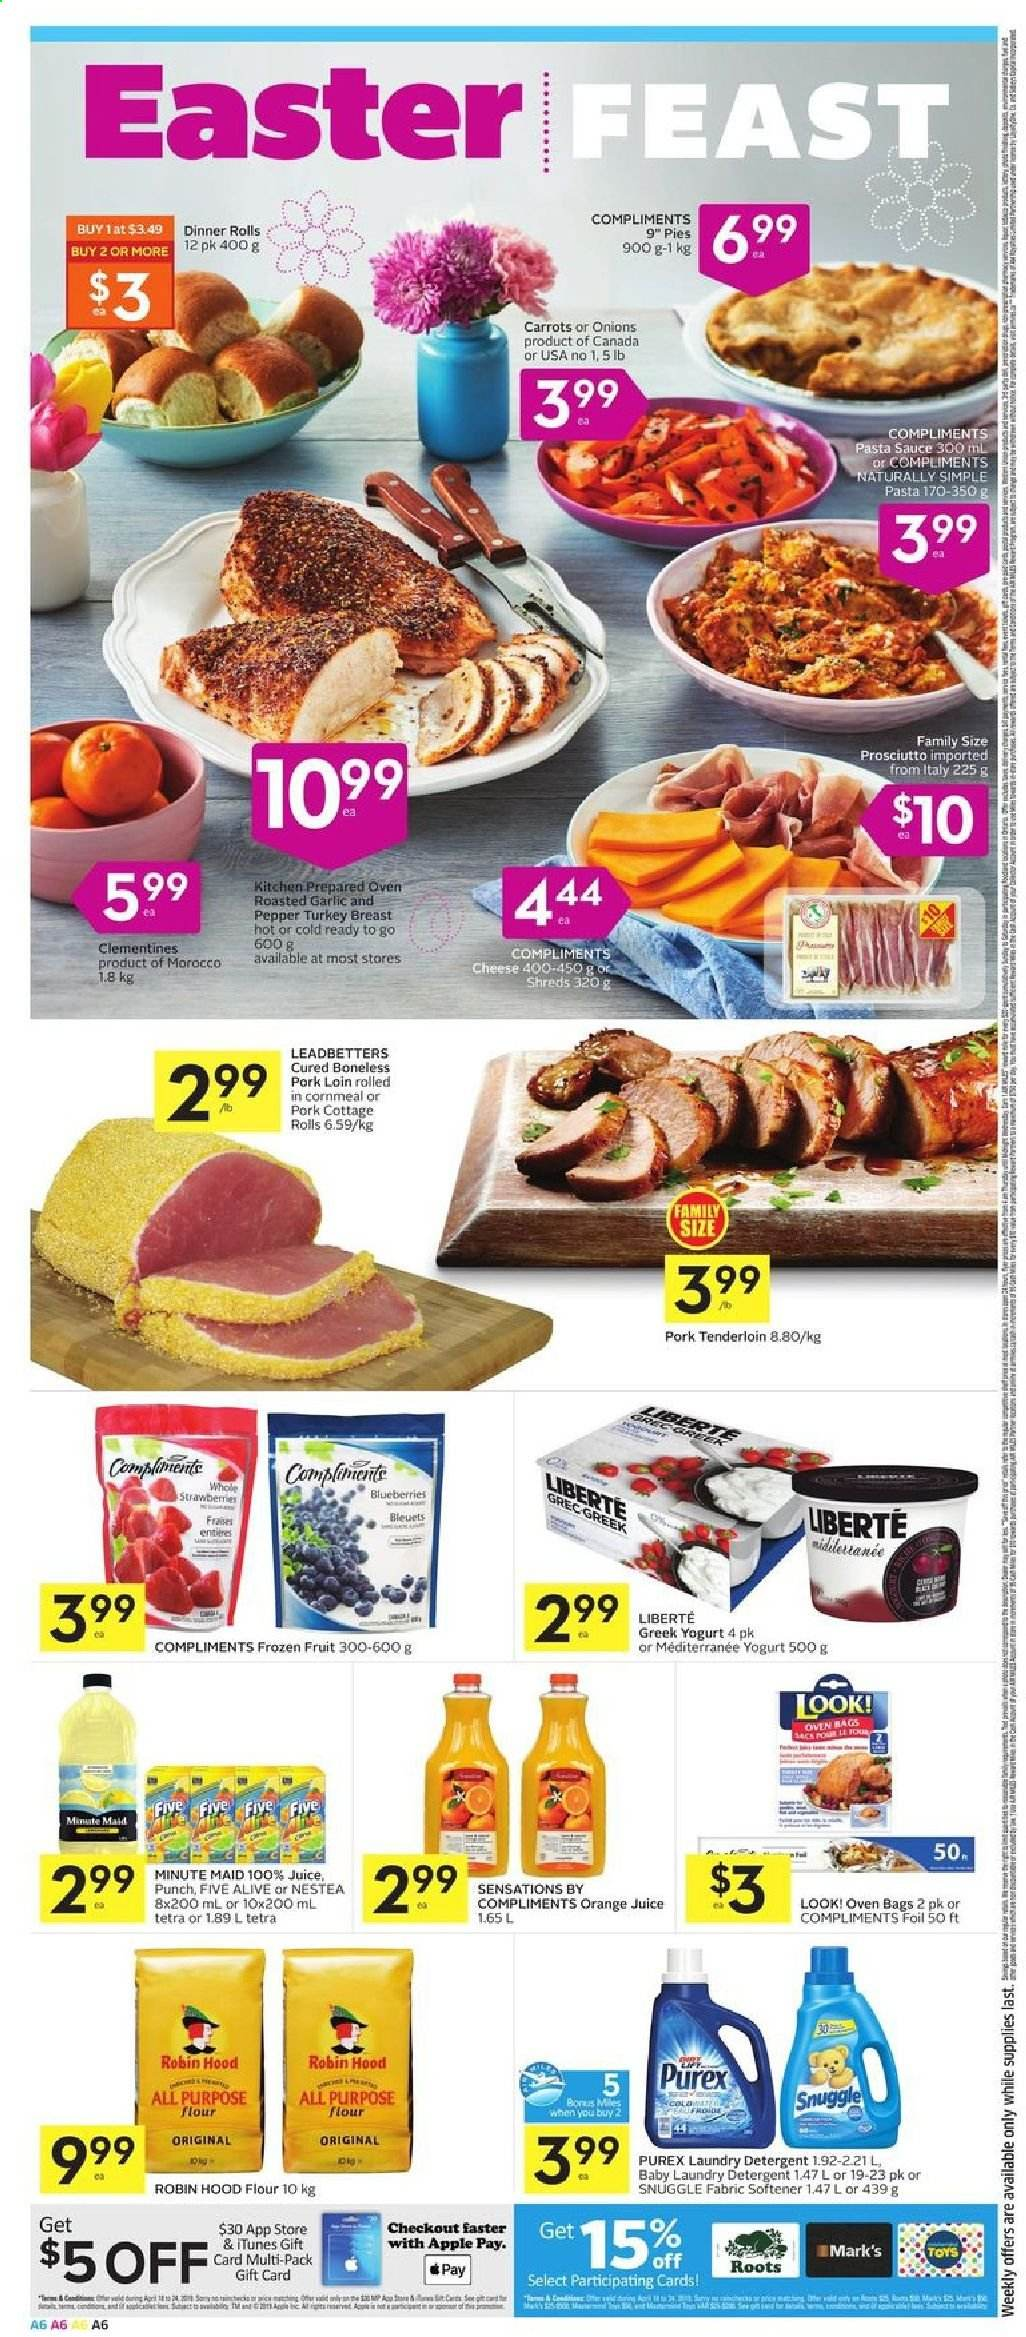 Foodland Flyer  - April 18, 2019 - April 24, 2019. Page 6.